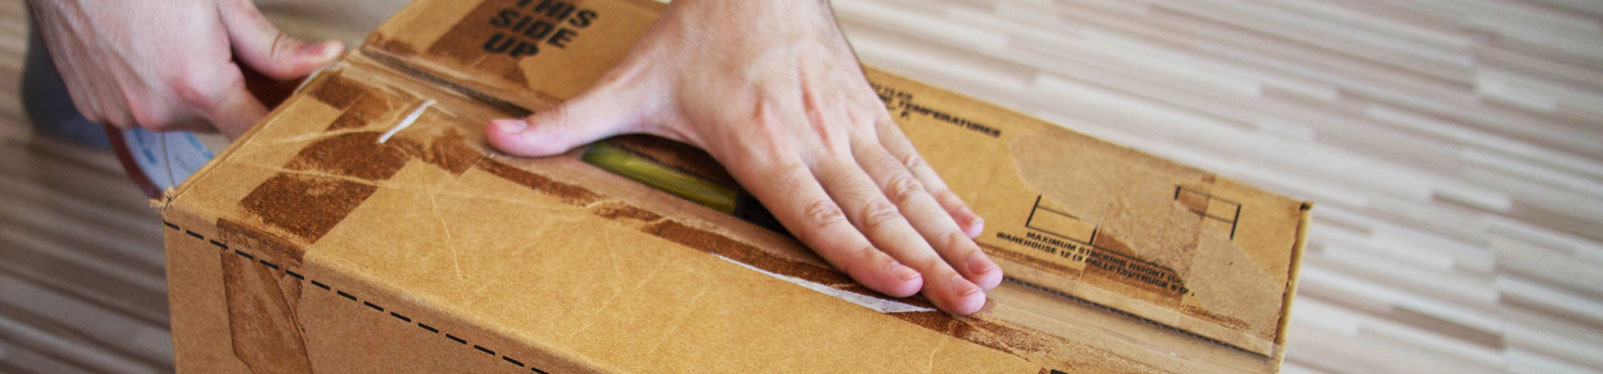 Movers Aid Packing Requirements & Needs